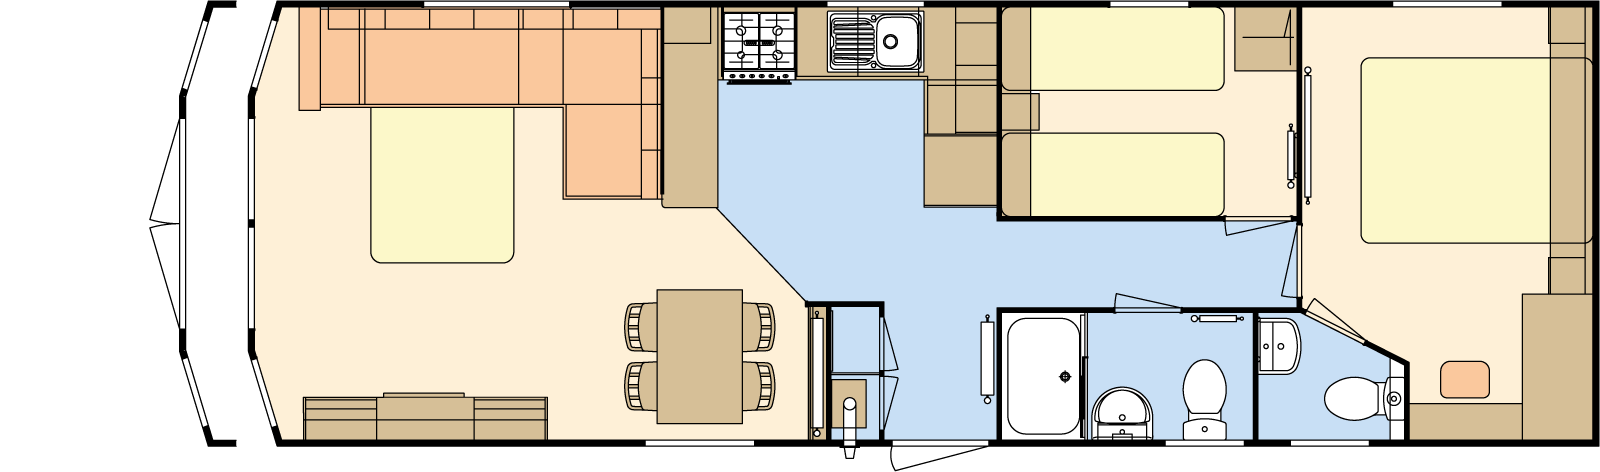 36 × 12 – 2 bedroom/6 berth